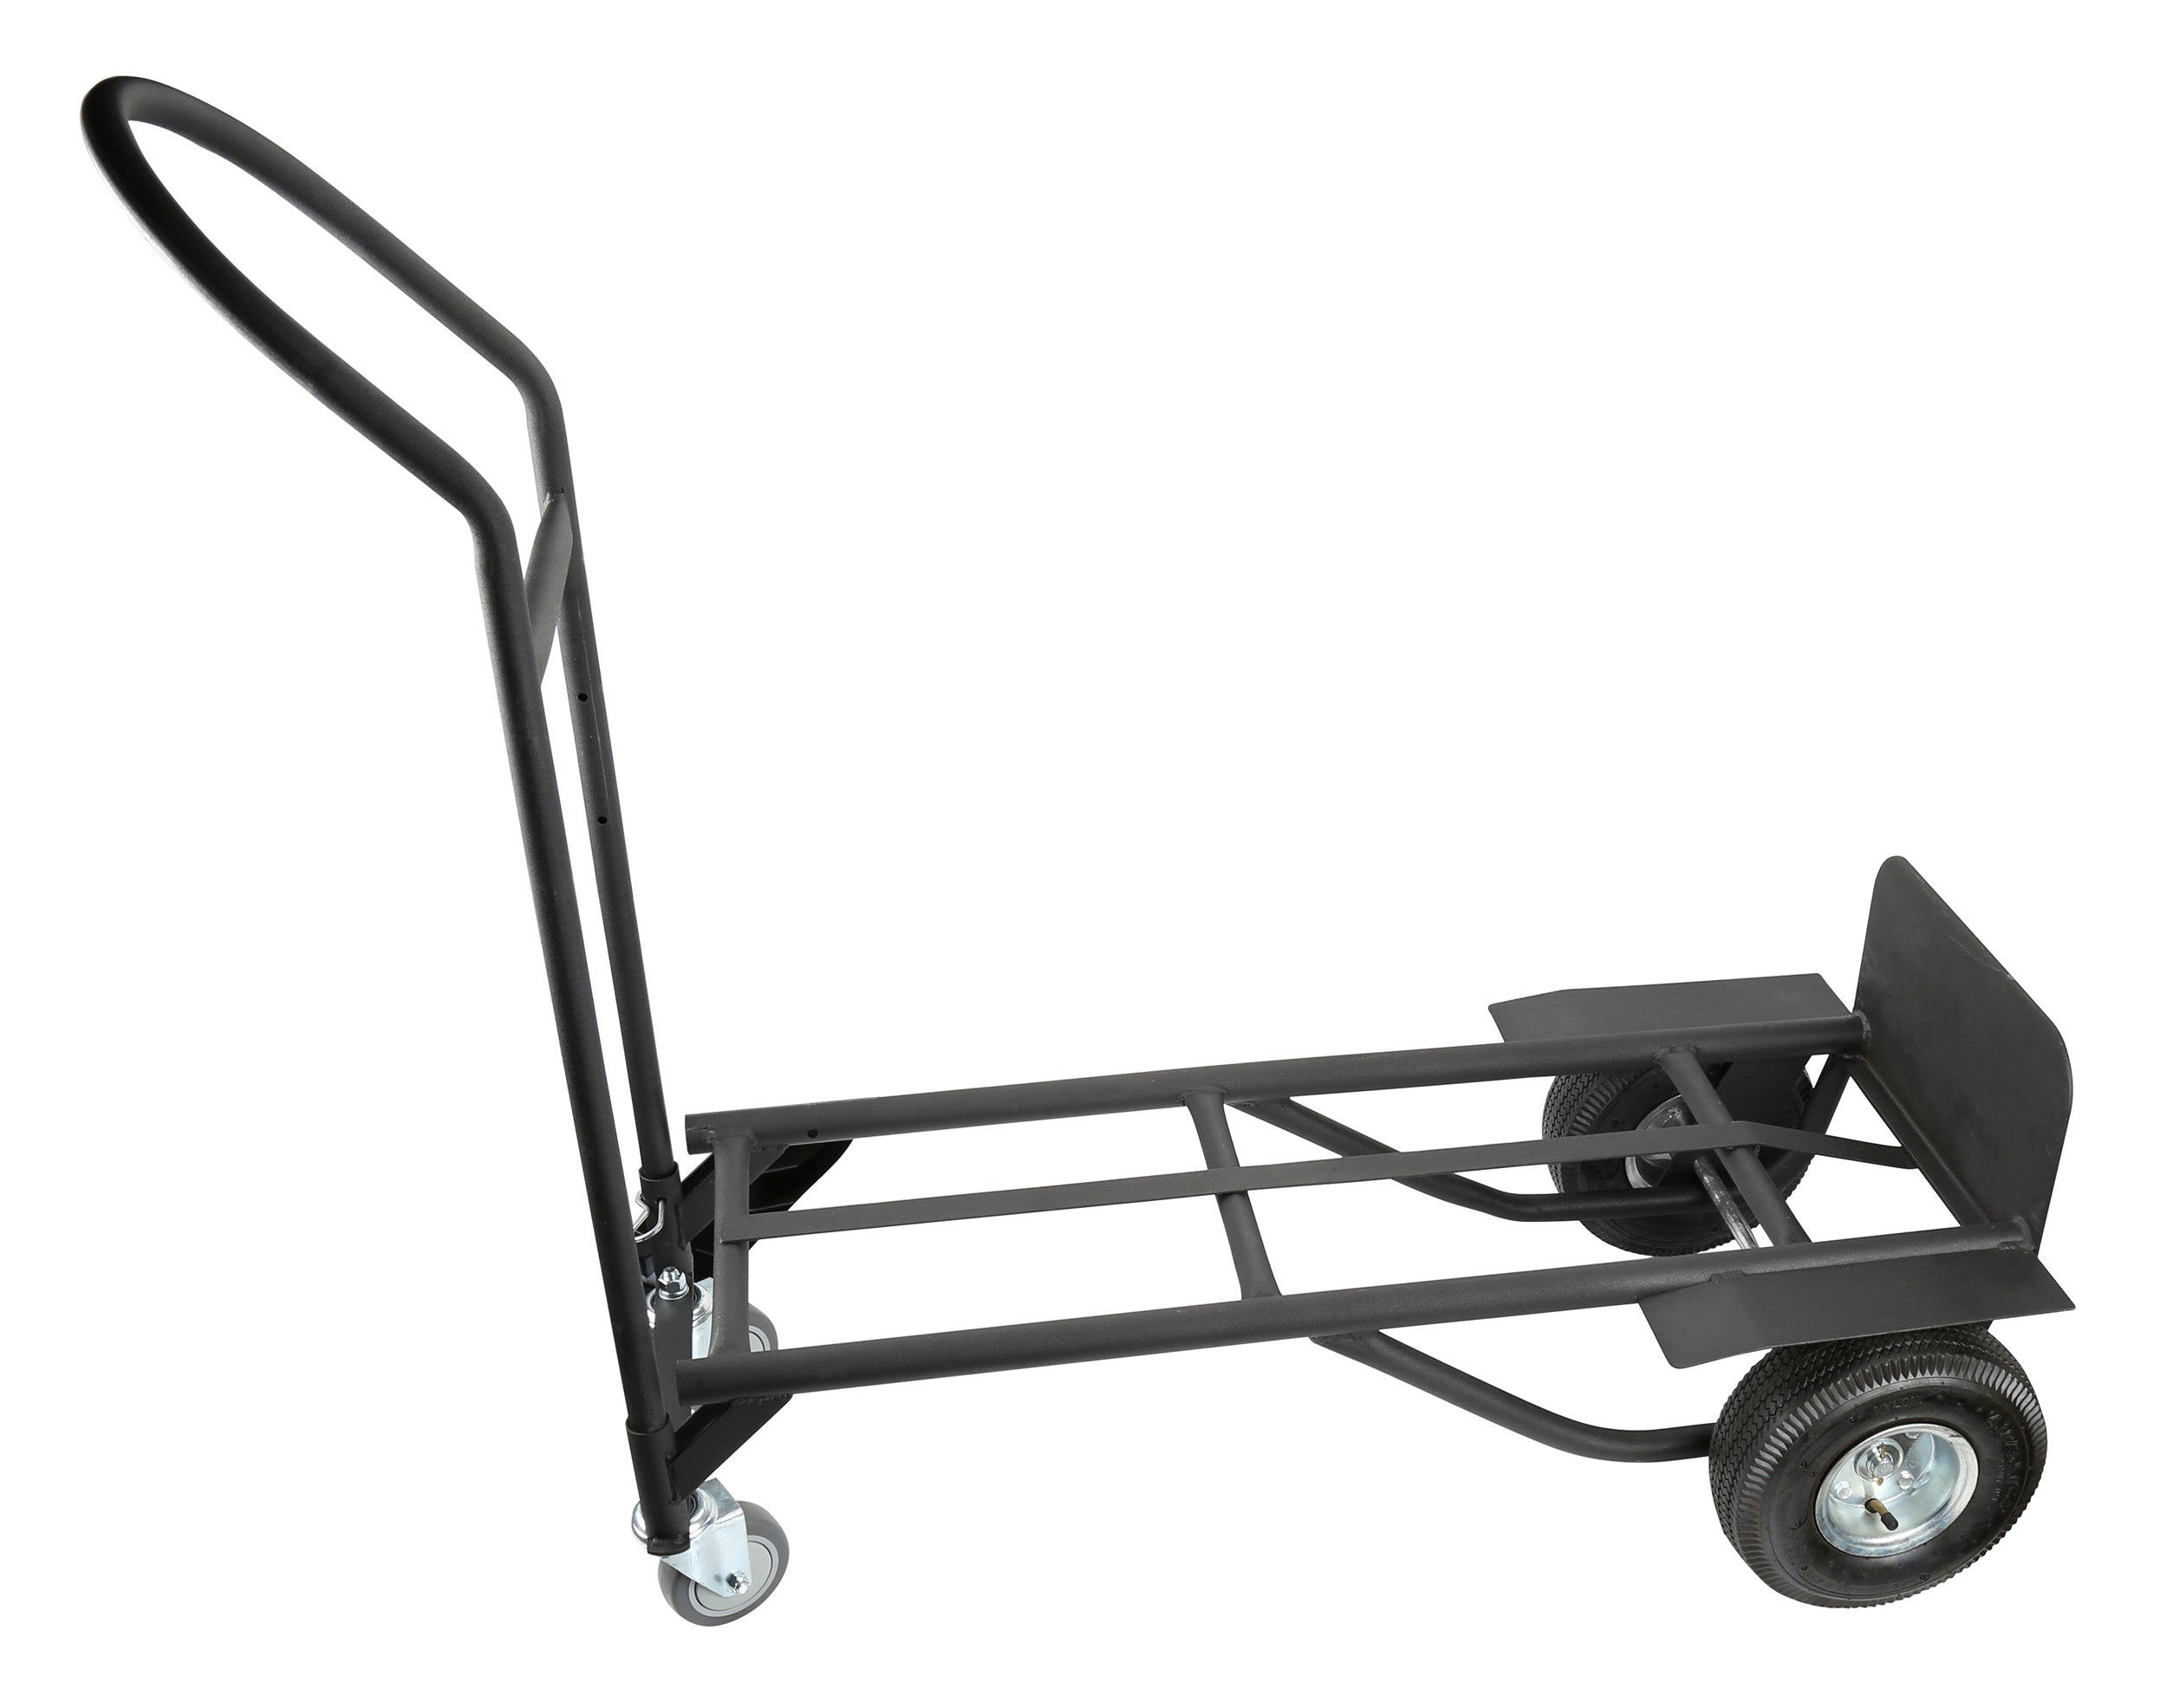 4 WHEELS 2-IN-1